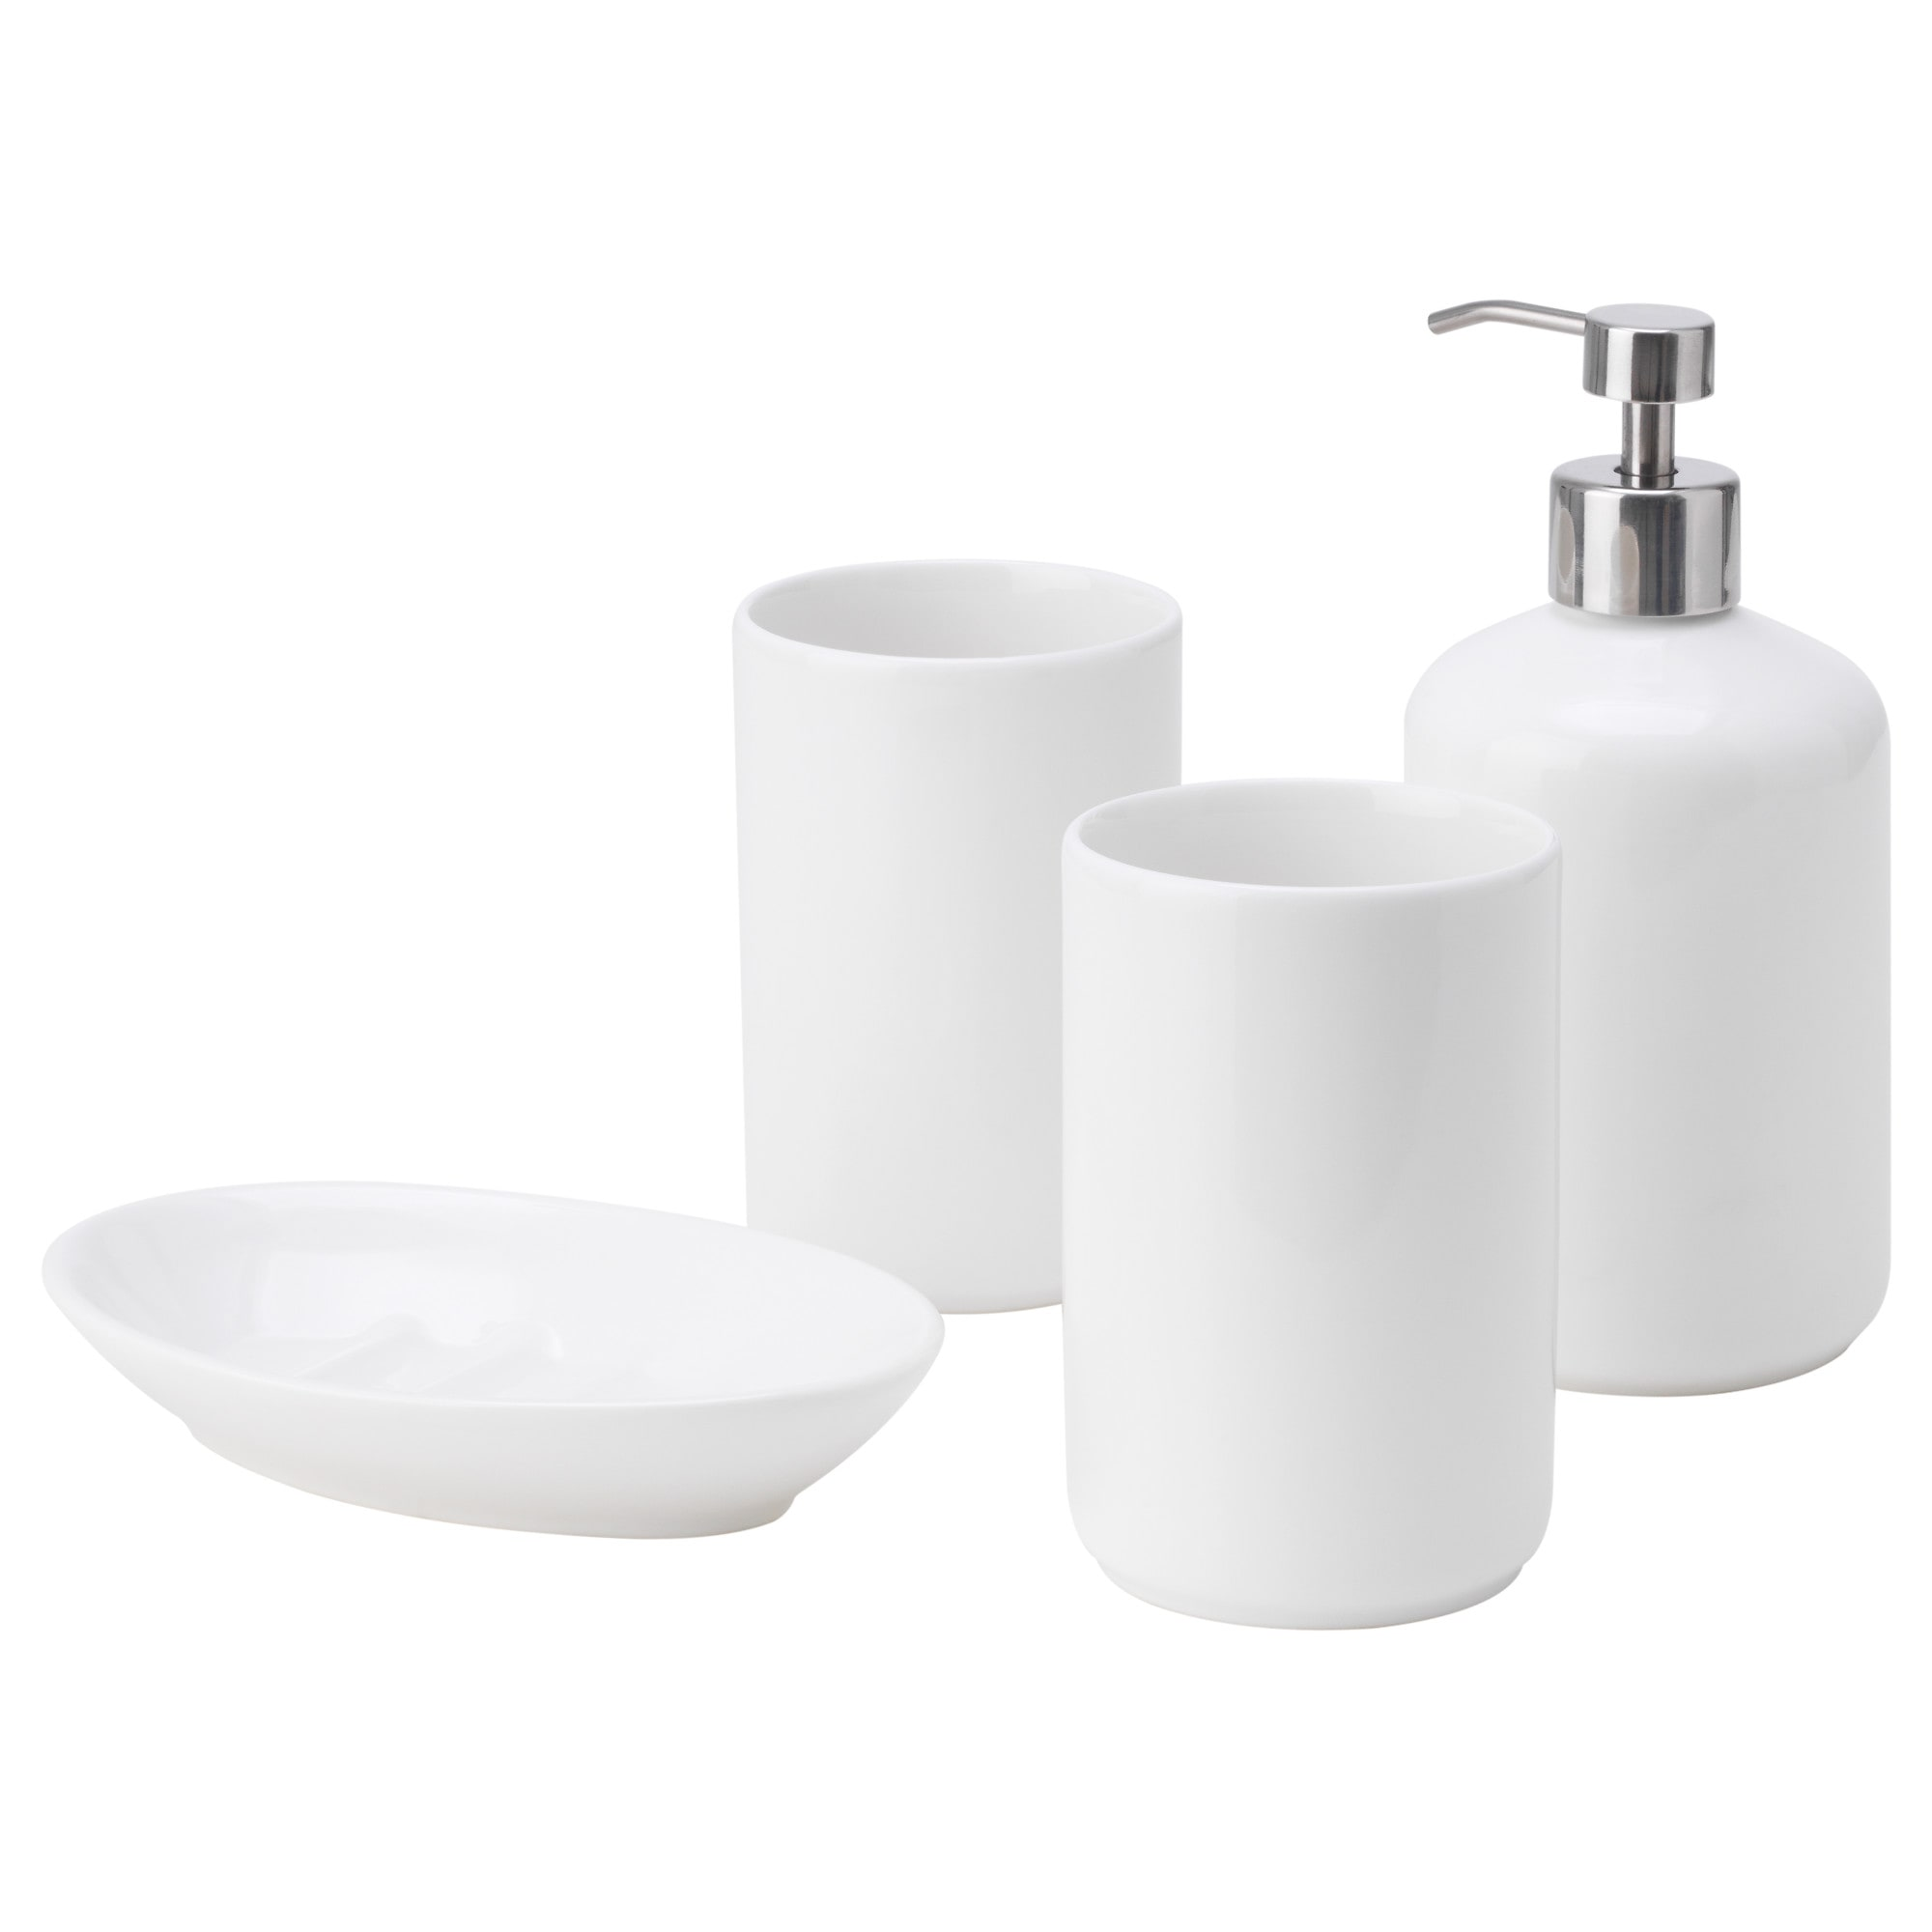 Nautical bathroom accessories uk - Boasj 4 Piece Bathroom Set White